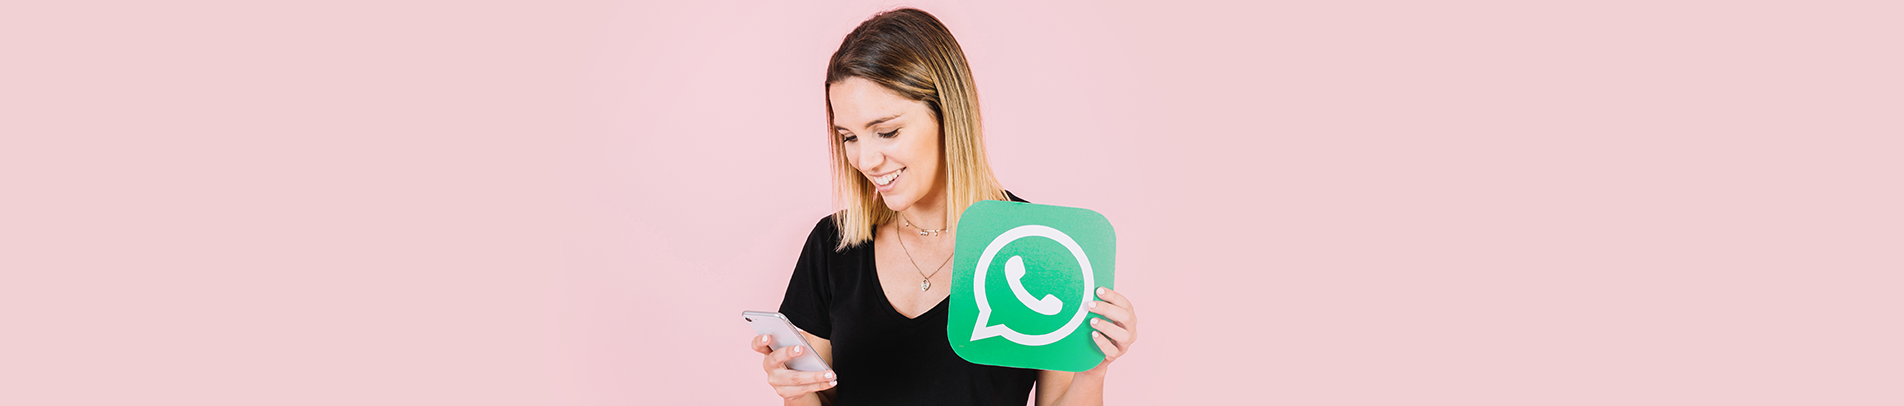 Now WhatsApp Your Surveys With SurveyRocket!